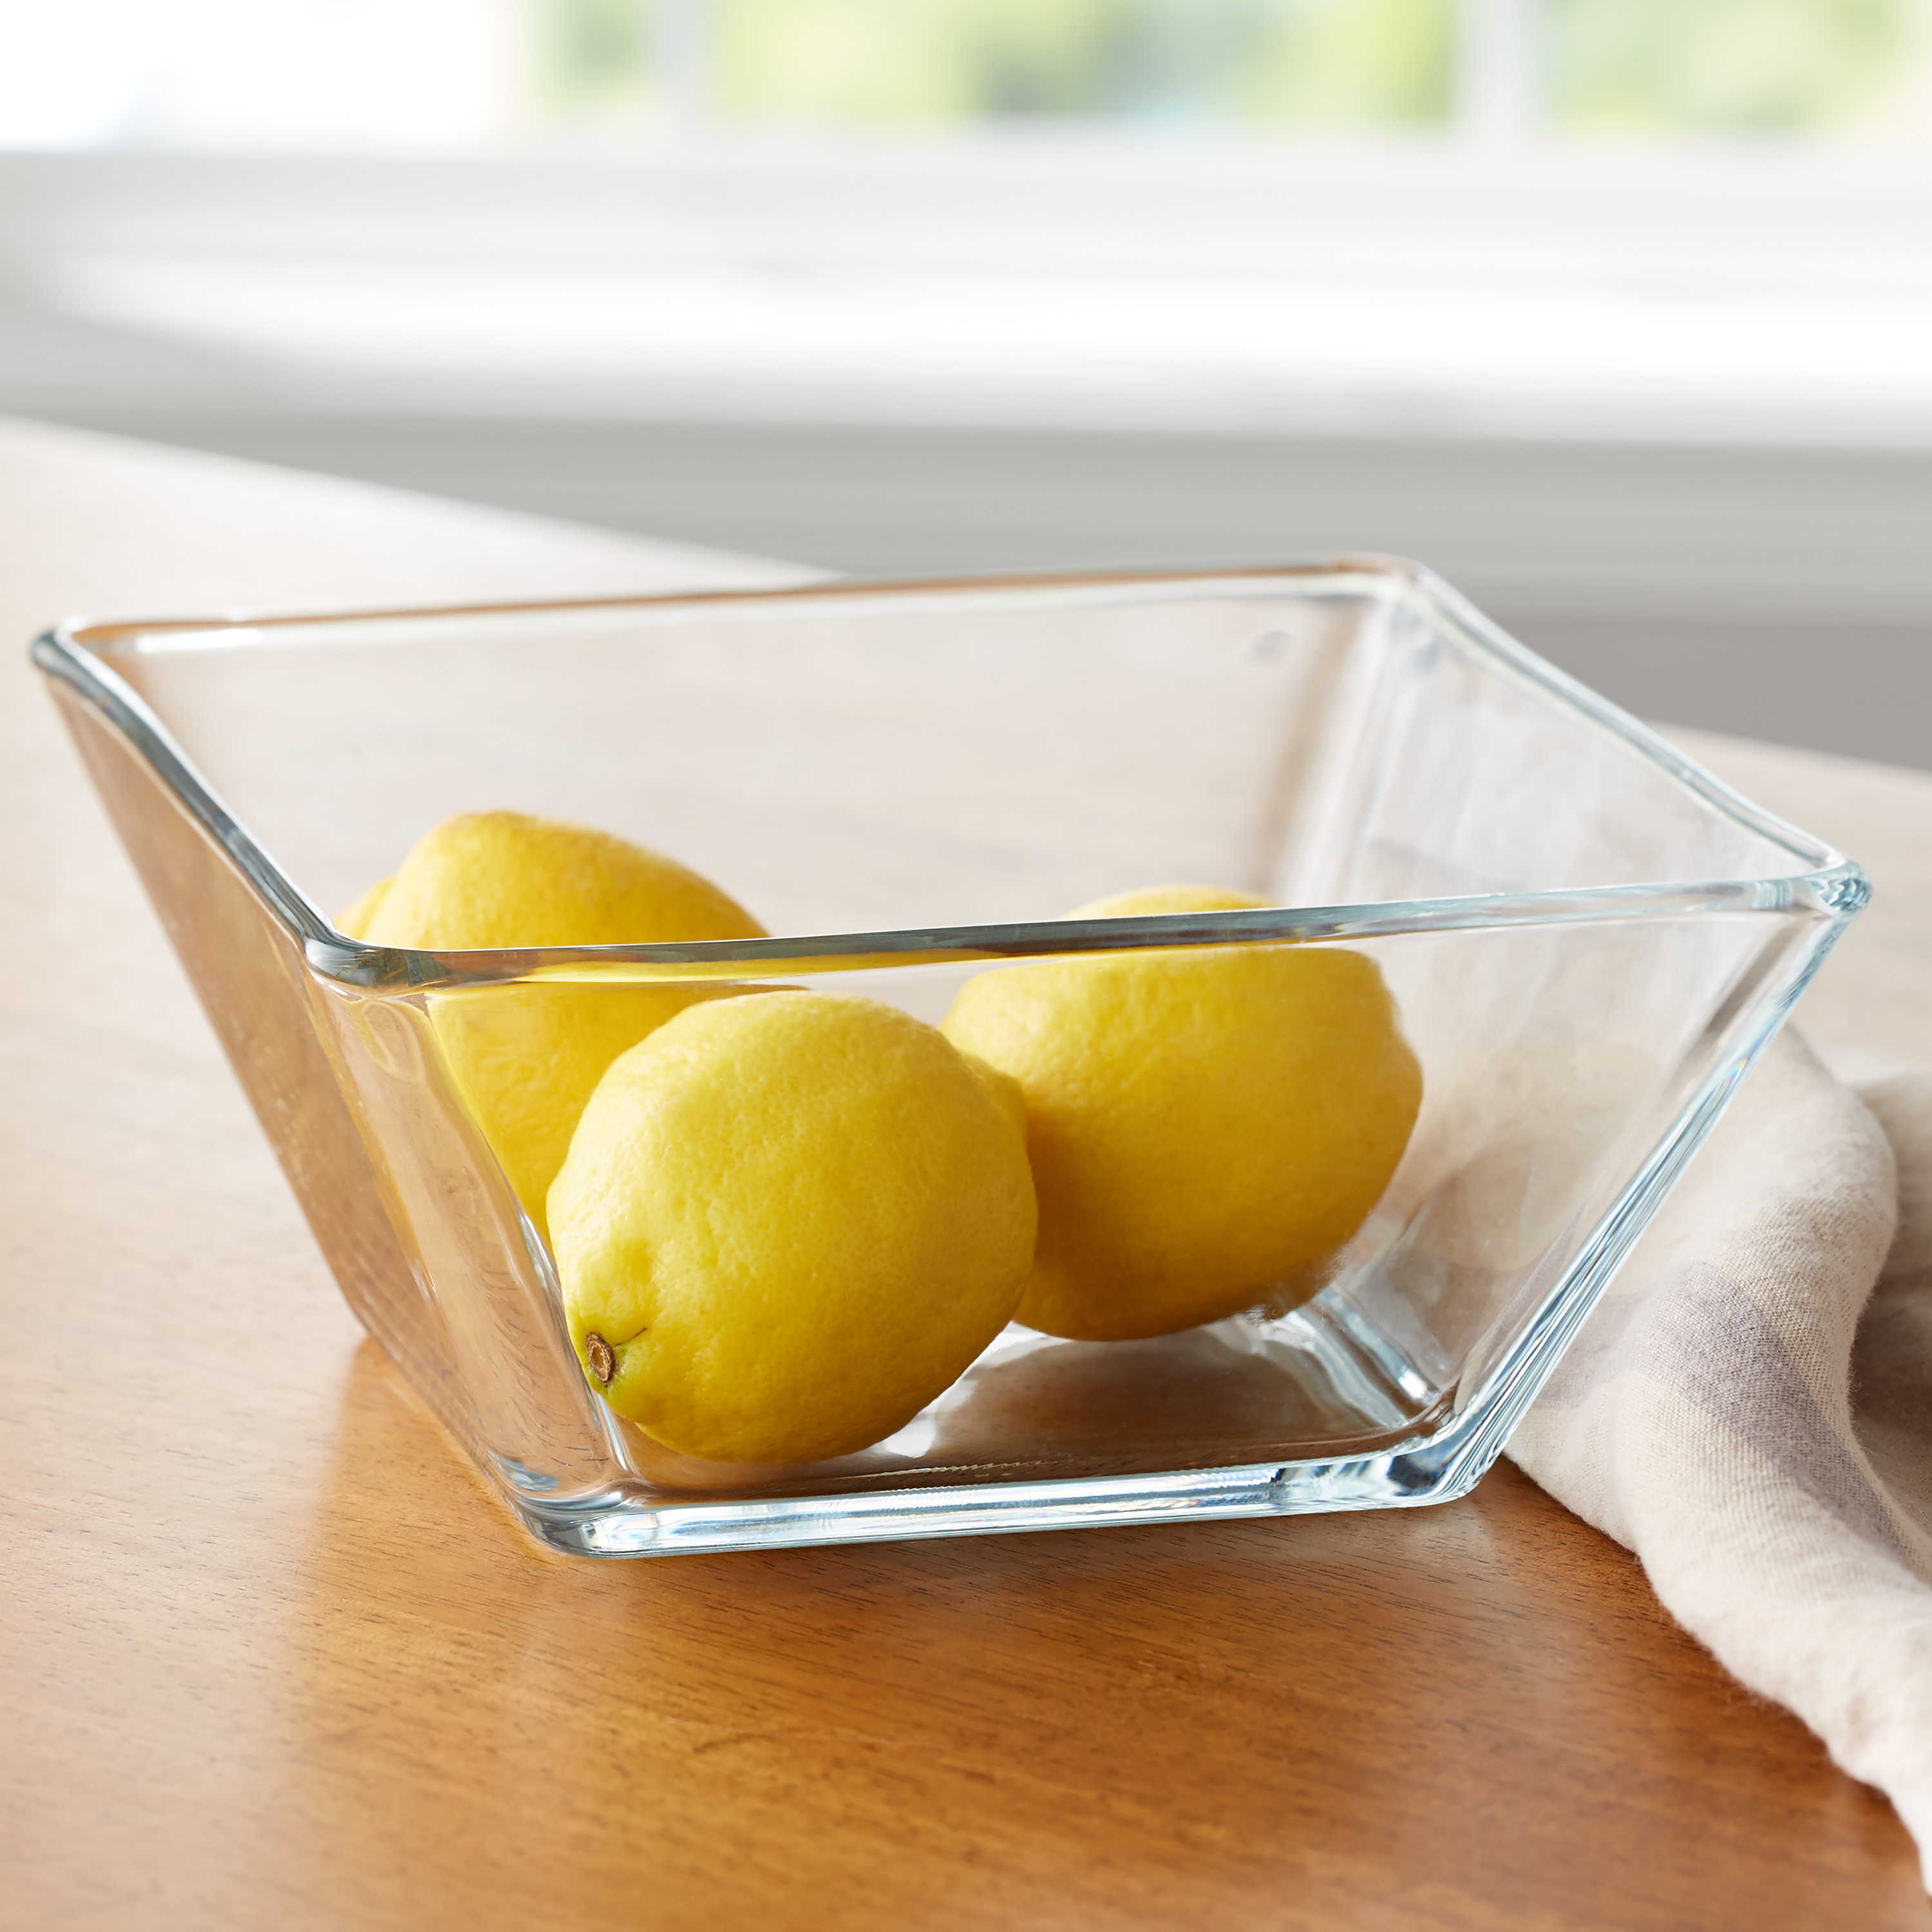 Mainstays 9-Inch Square Glass Serving Bowl